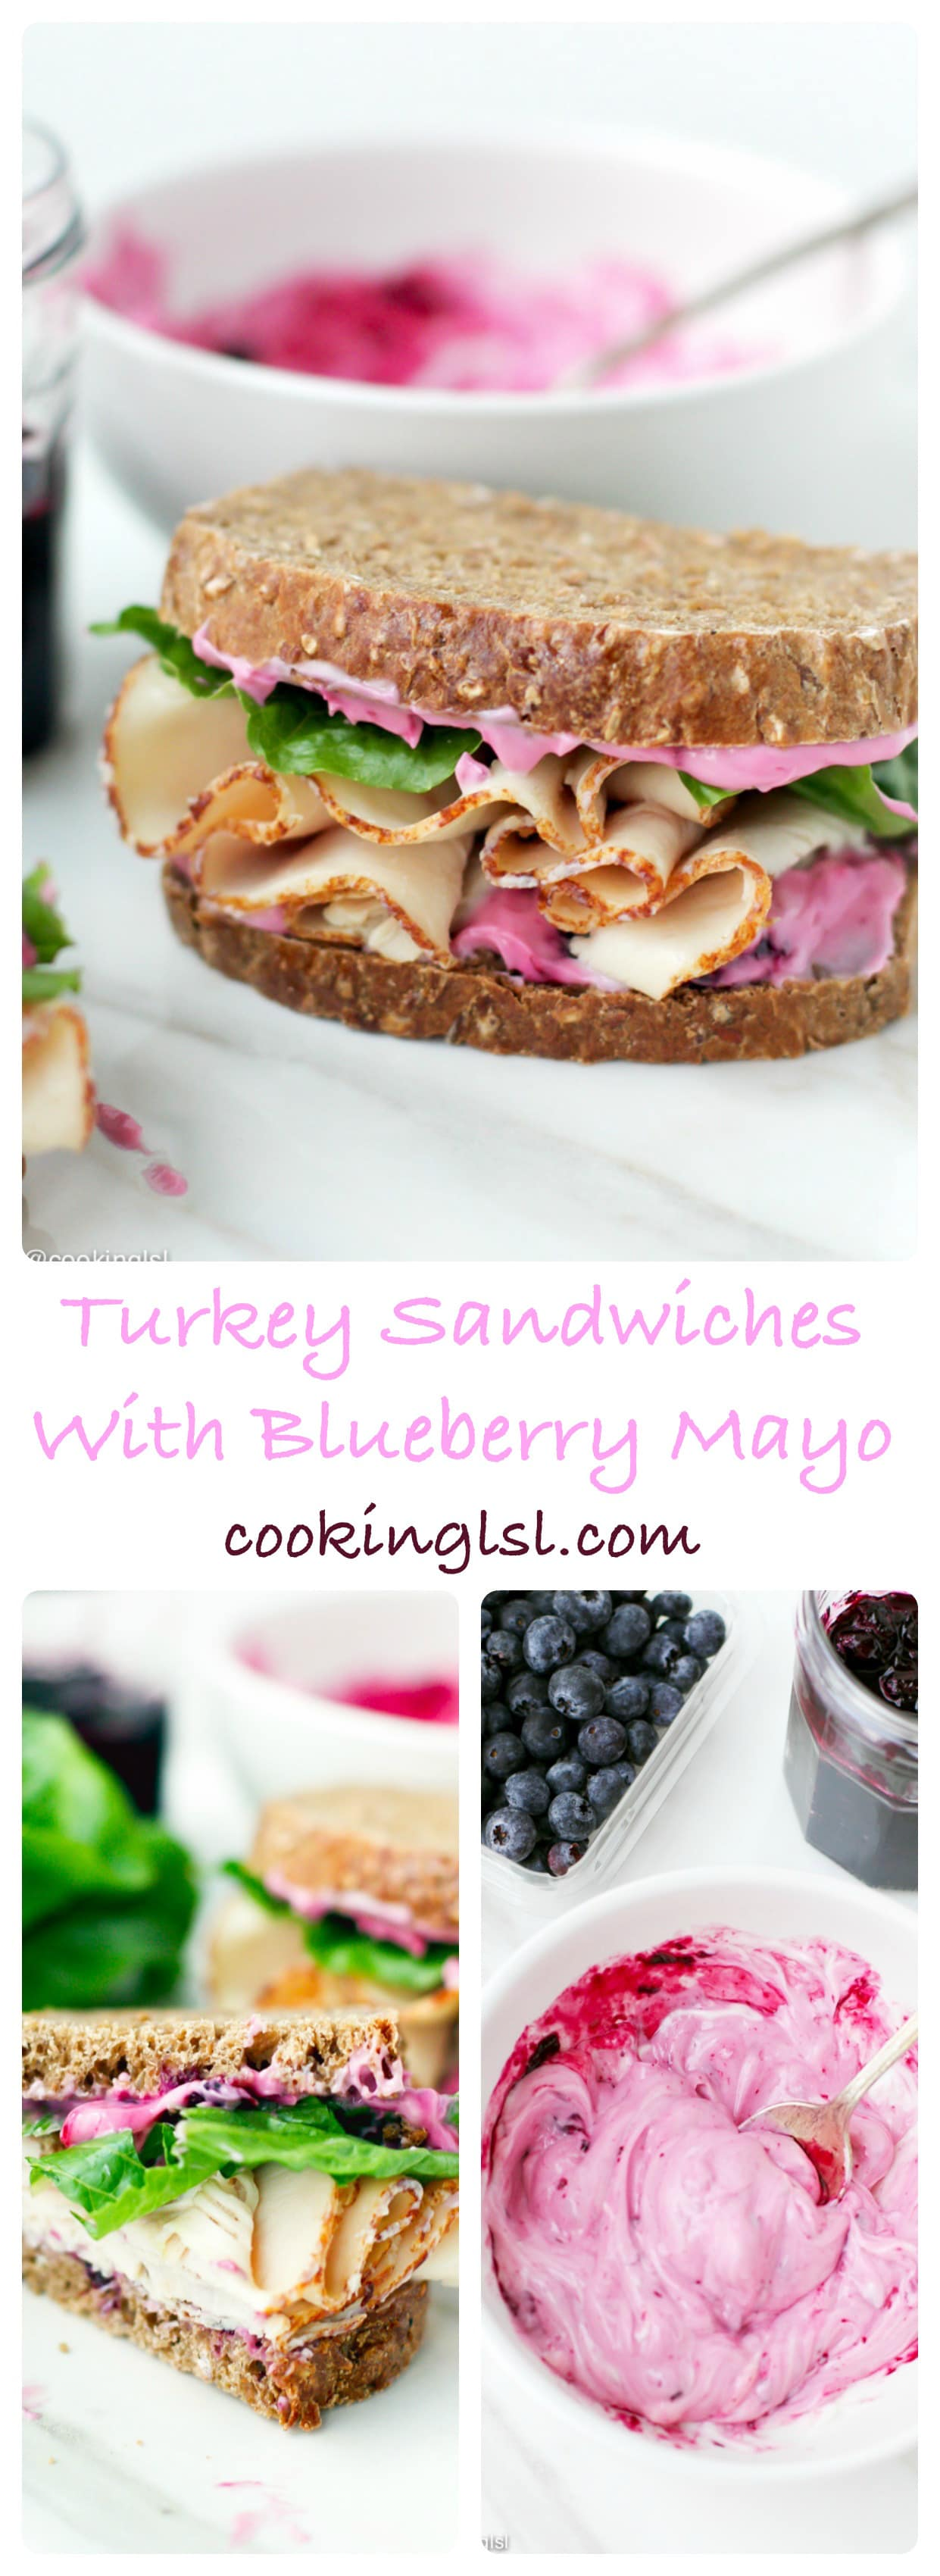 turkey-sandwiches-blueberry-mayo